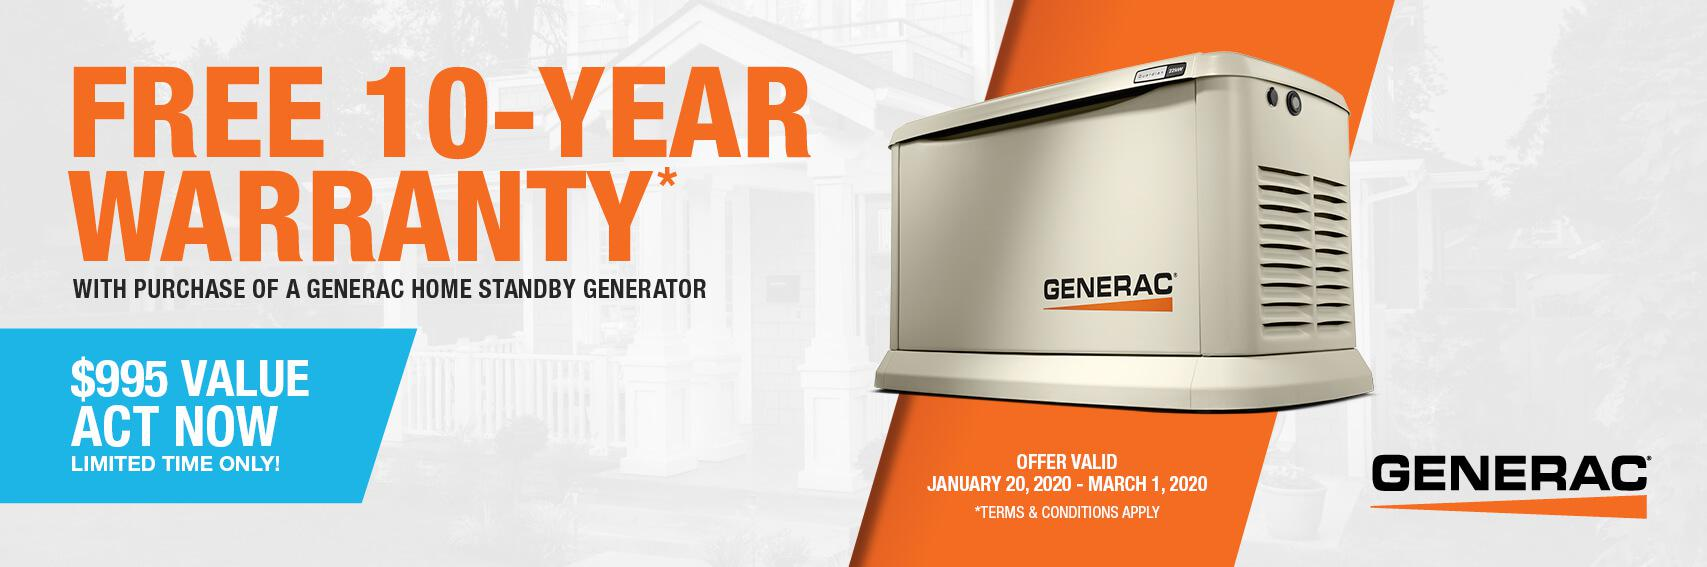 Homestandby Generator Deal | Warranty Offer | Generac Dealer | BLAIRSTOWN, NJ